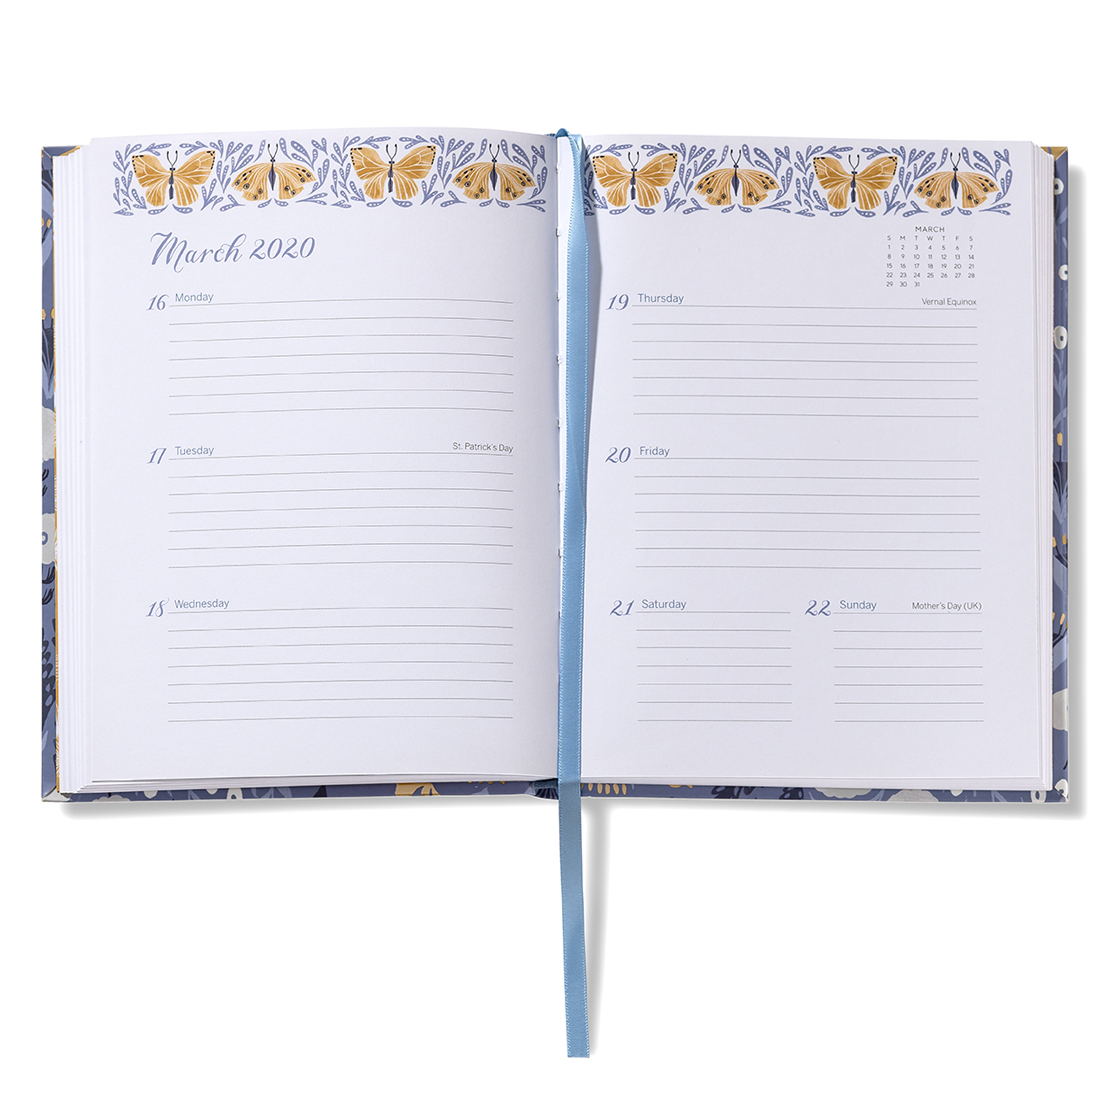 High_Note_Garden_Bee_WeeklyPlanner3.jpg